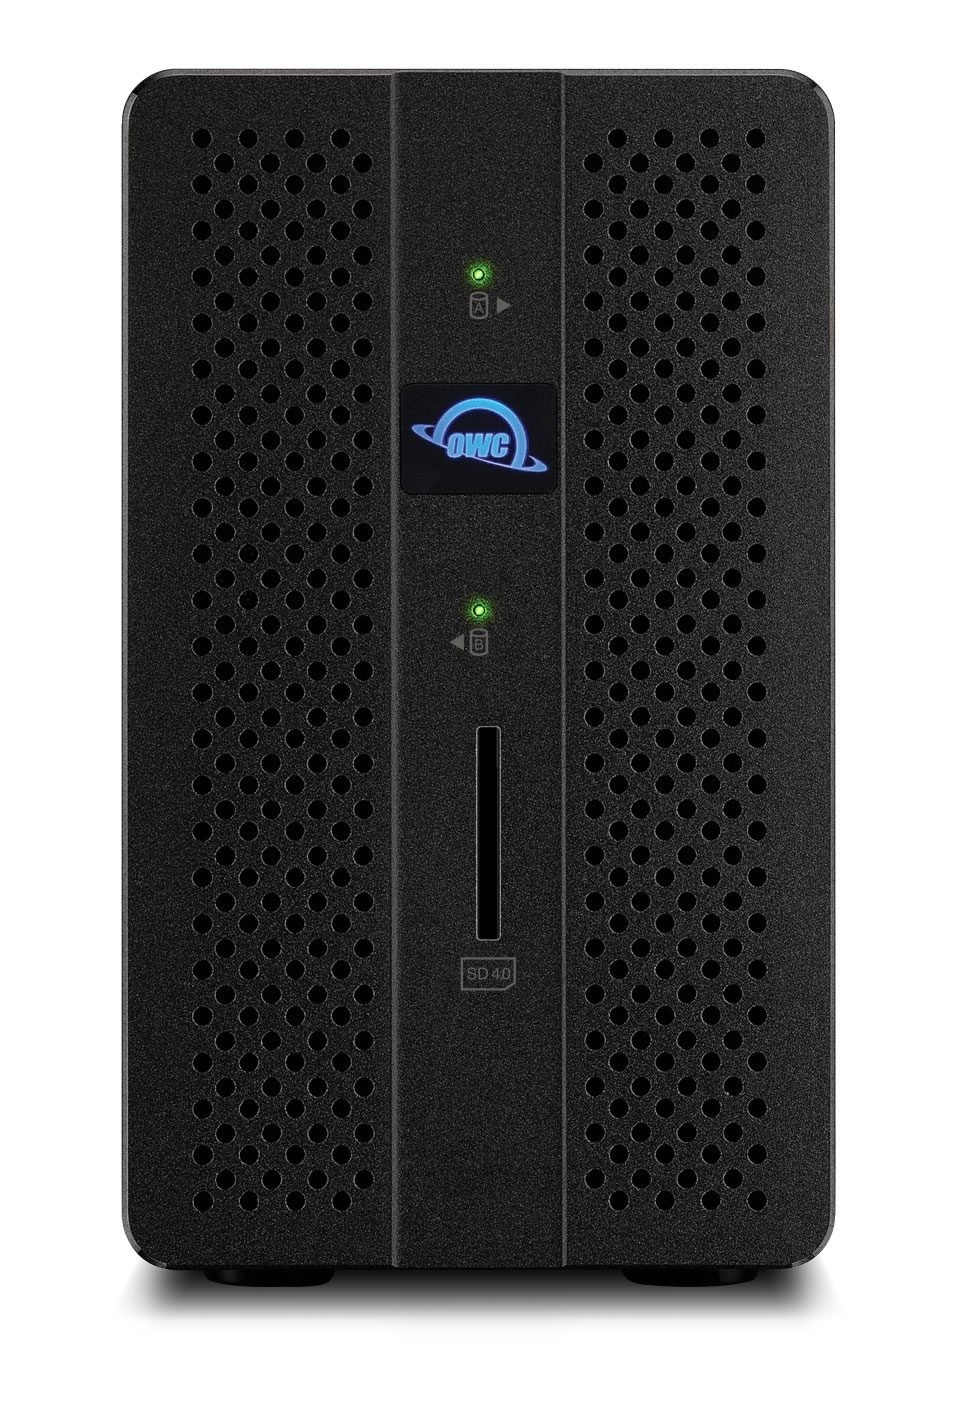 12.0TB OWC Mercury Elite Pro Dock - Thunderbolt 3 Dock and Dual-Drive RAID Solution, OWCTB3RSDK12T